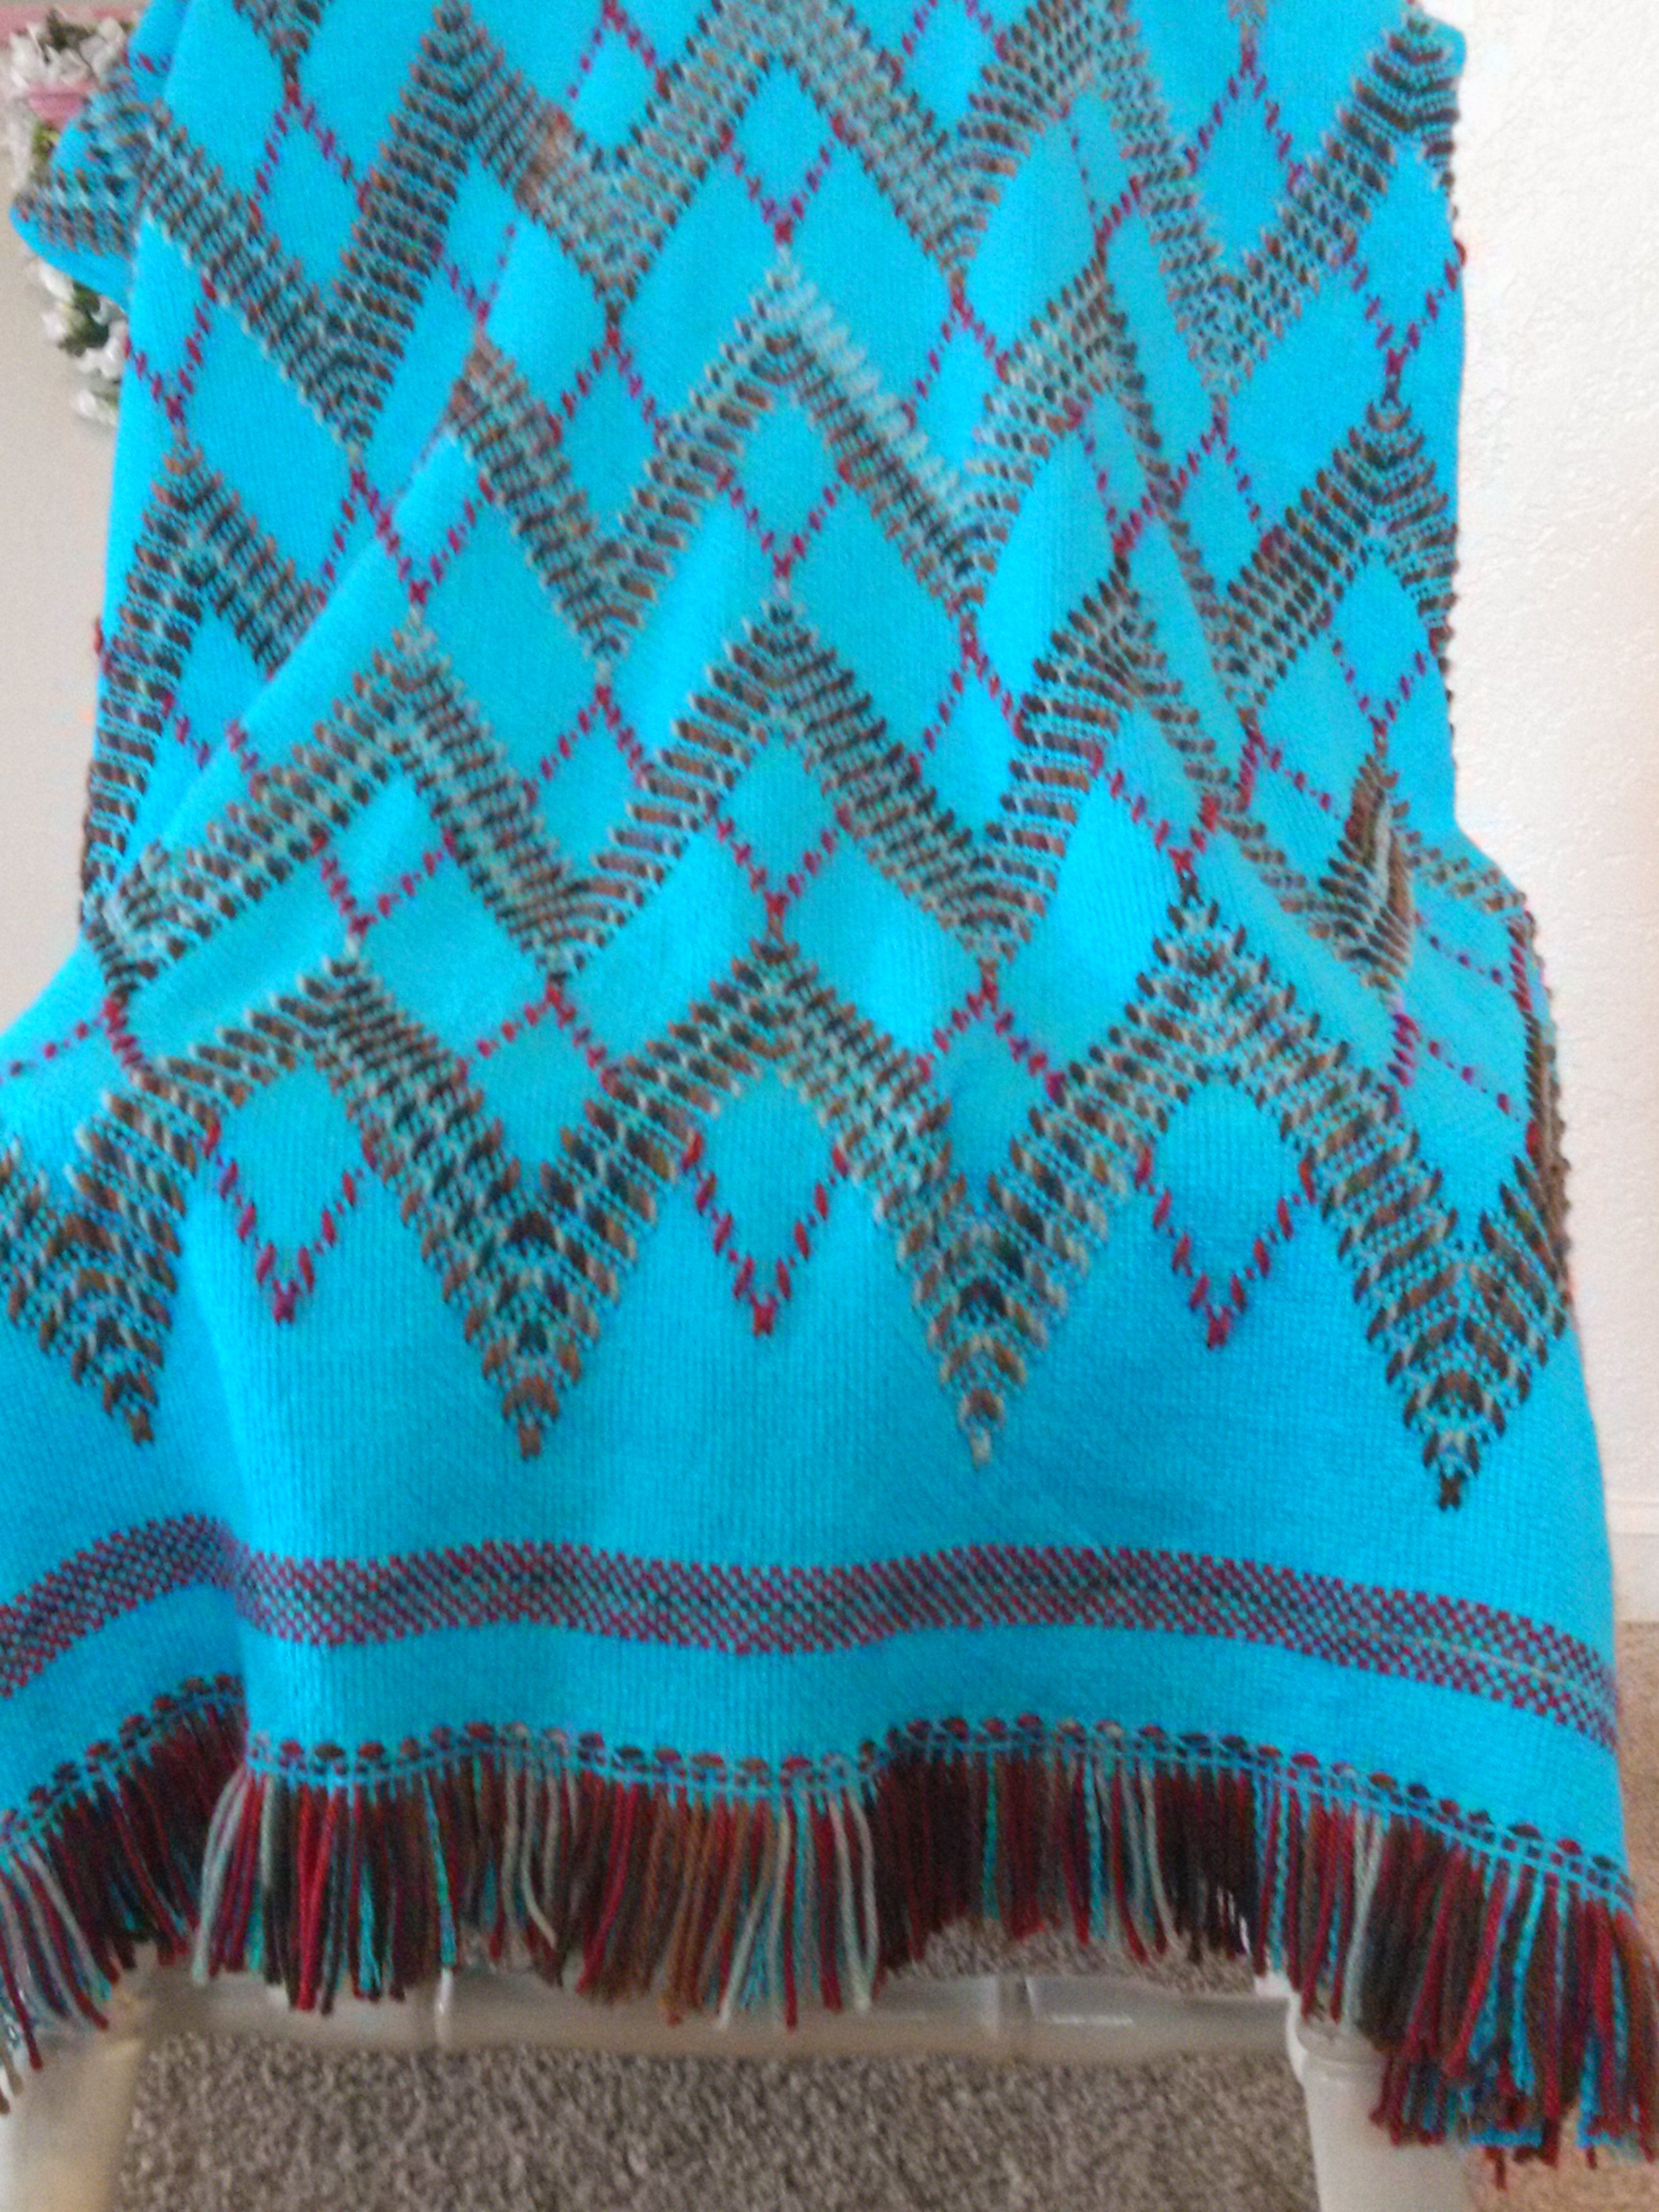 Swedish Weaving Blanket. Peaks and Valleys pattern with variegated brown  and rust red yarn on turquoise monk's cloth.